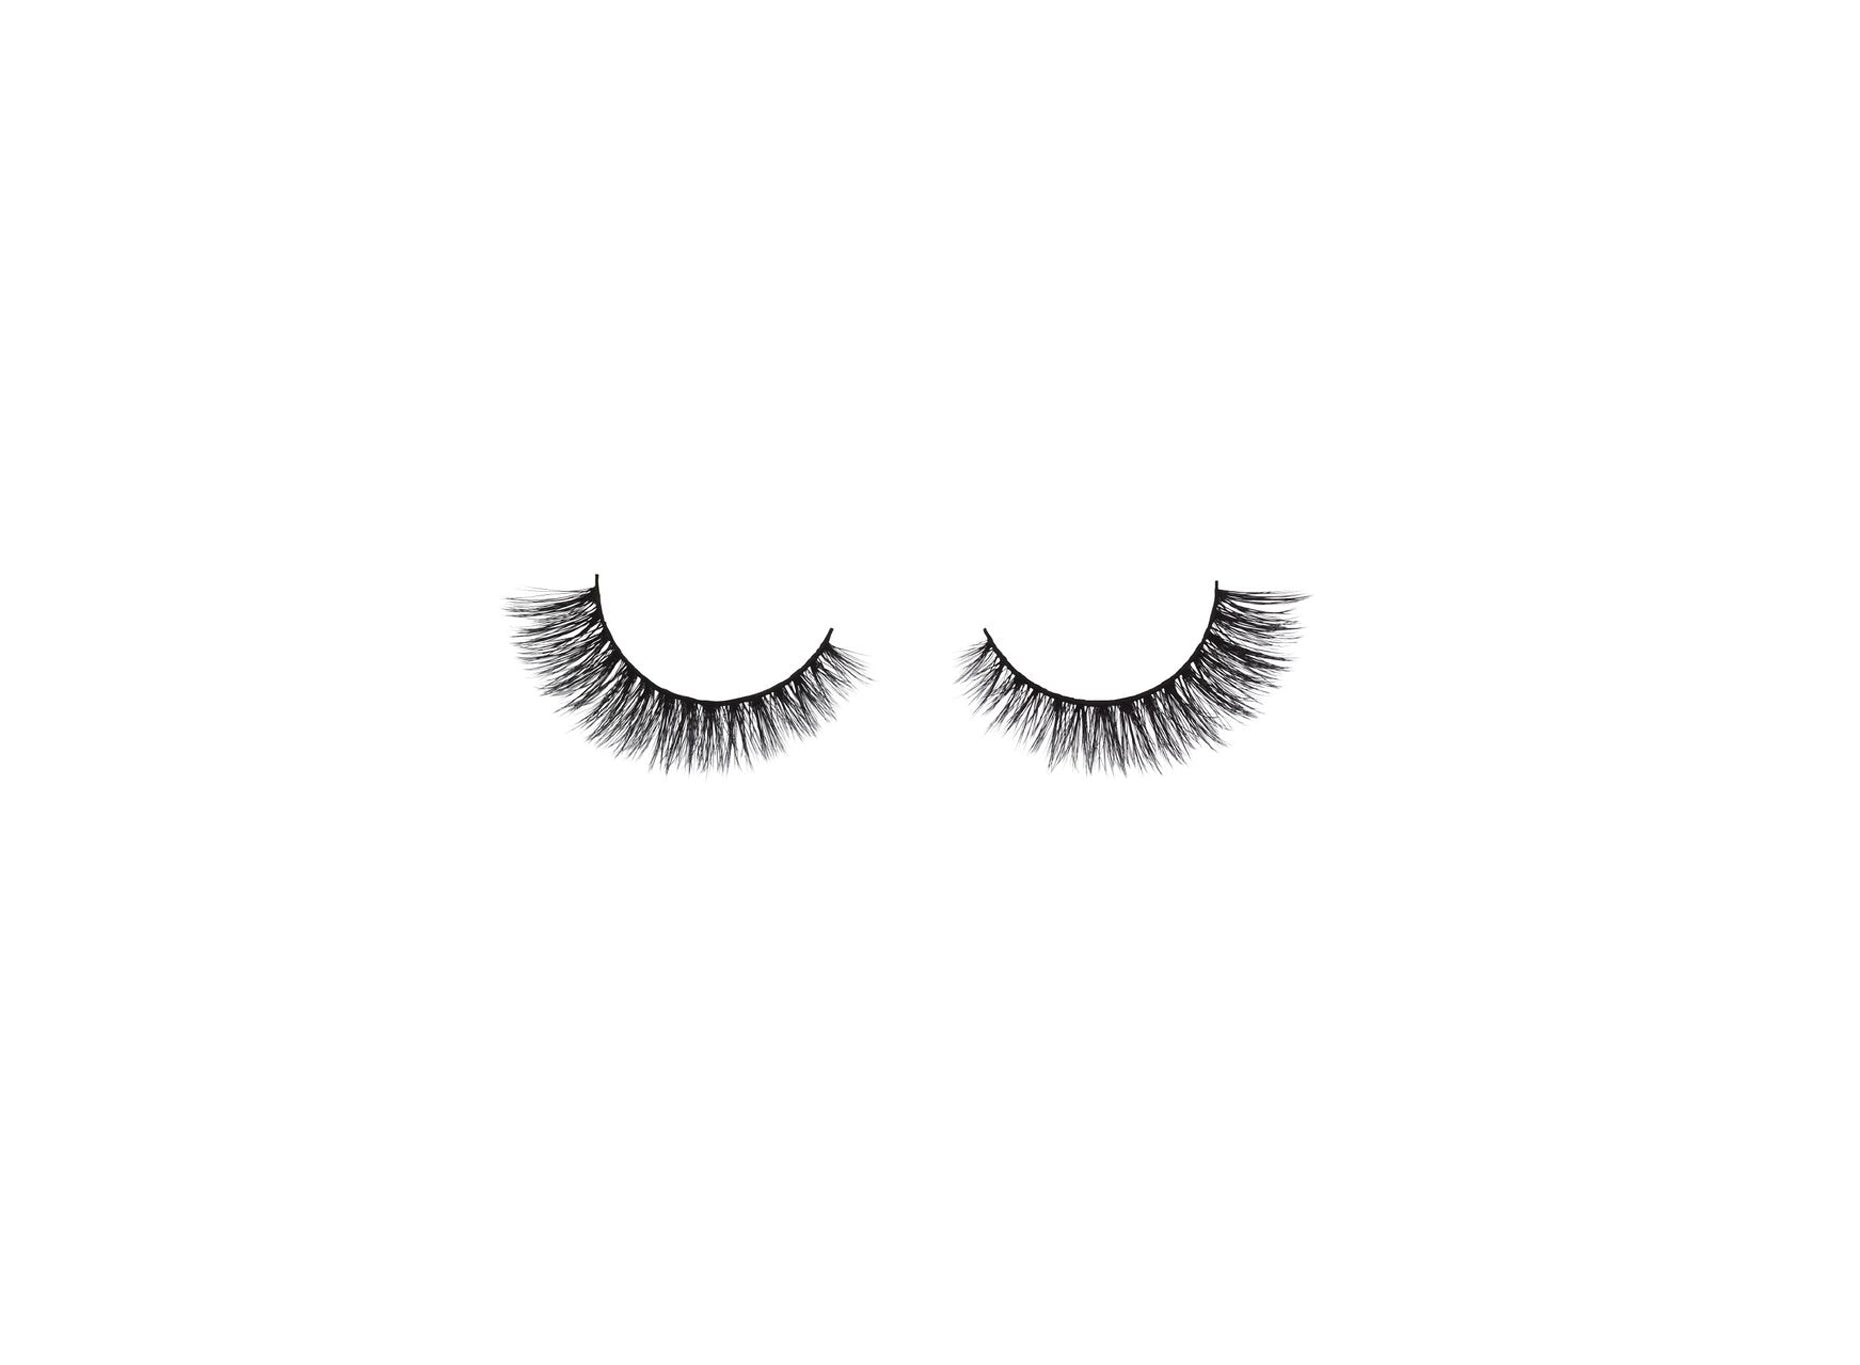 thumbnail - cat eye lashes from lash star beauty